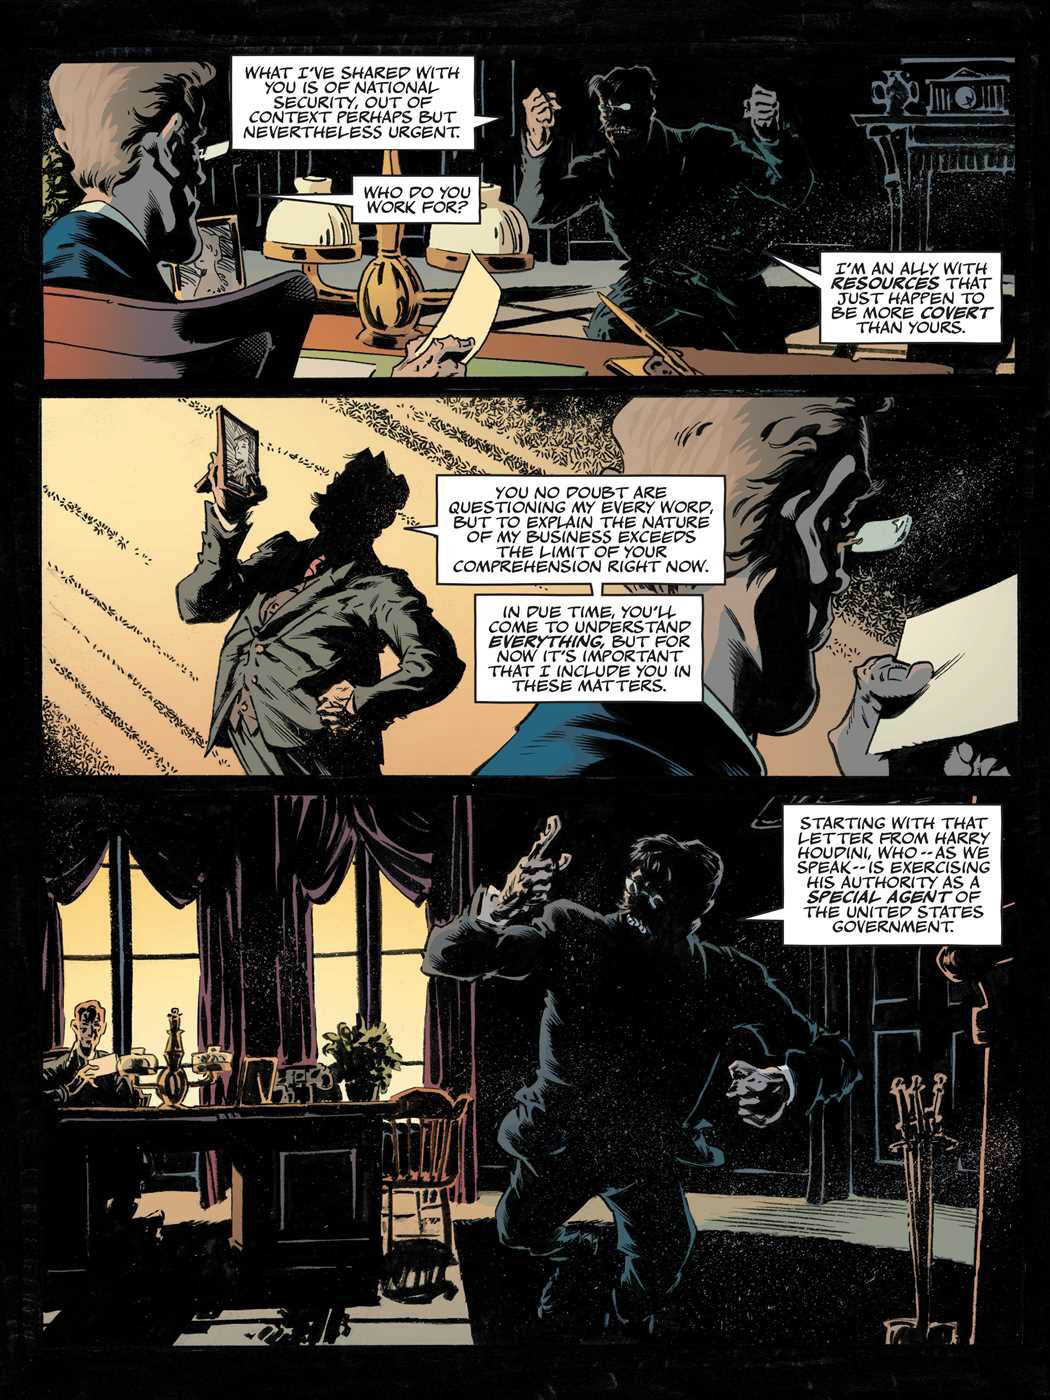 after-houdini-page2-Jeremy-Holt-Comic-Book-Author-2.jpg